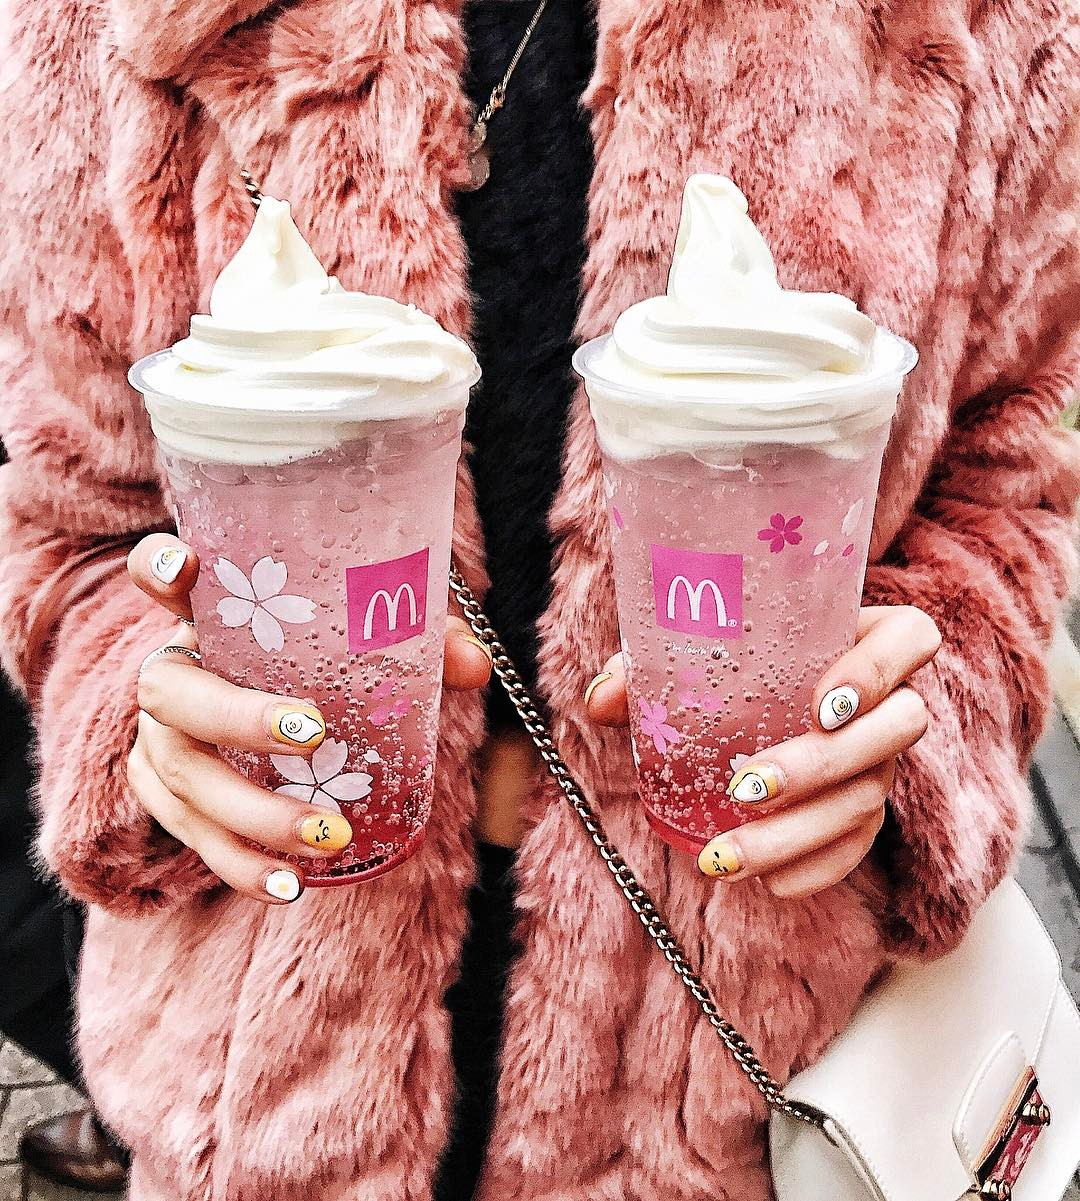 McDonald's cherry blossom float is a pink drink paradise